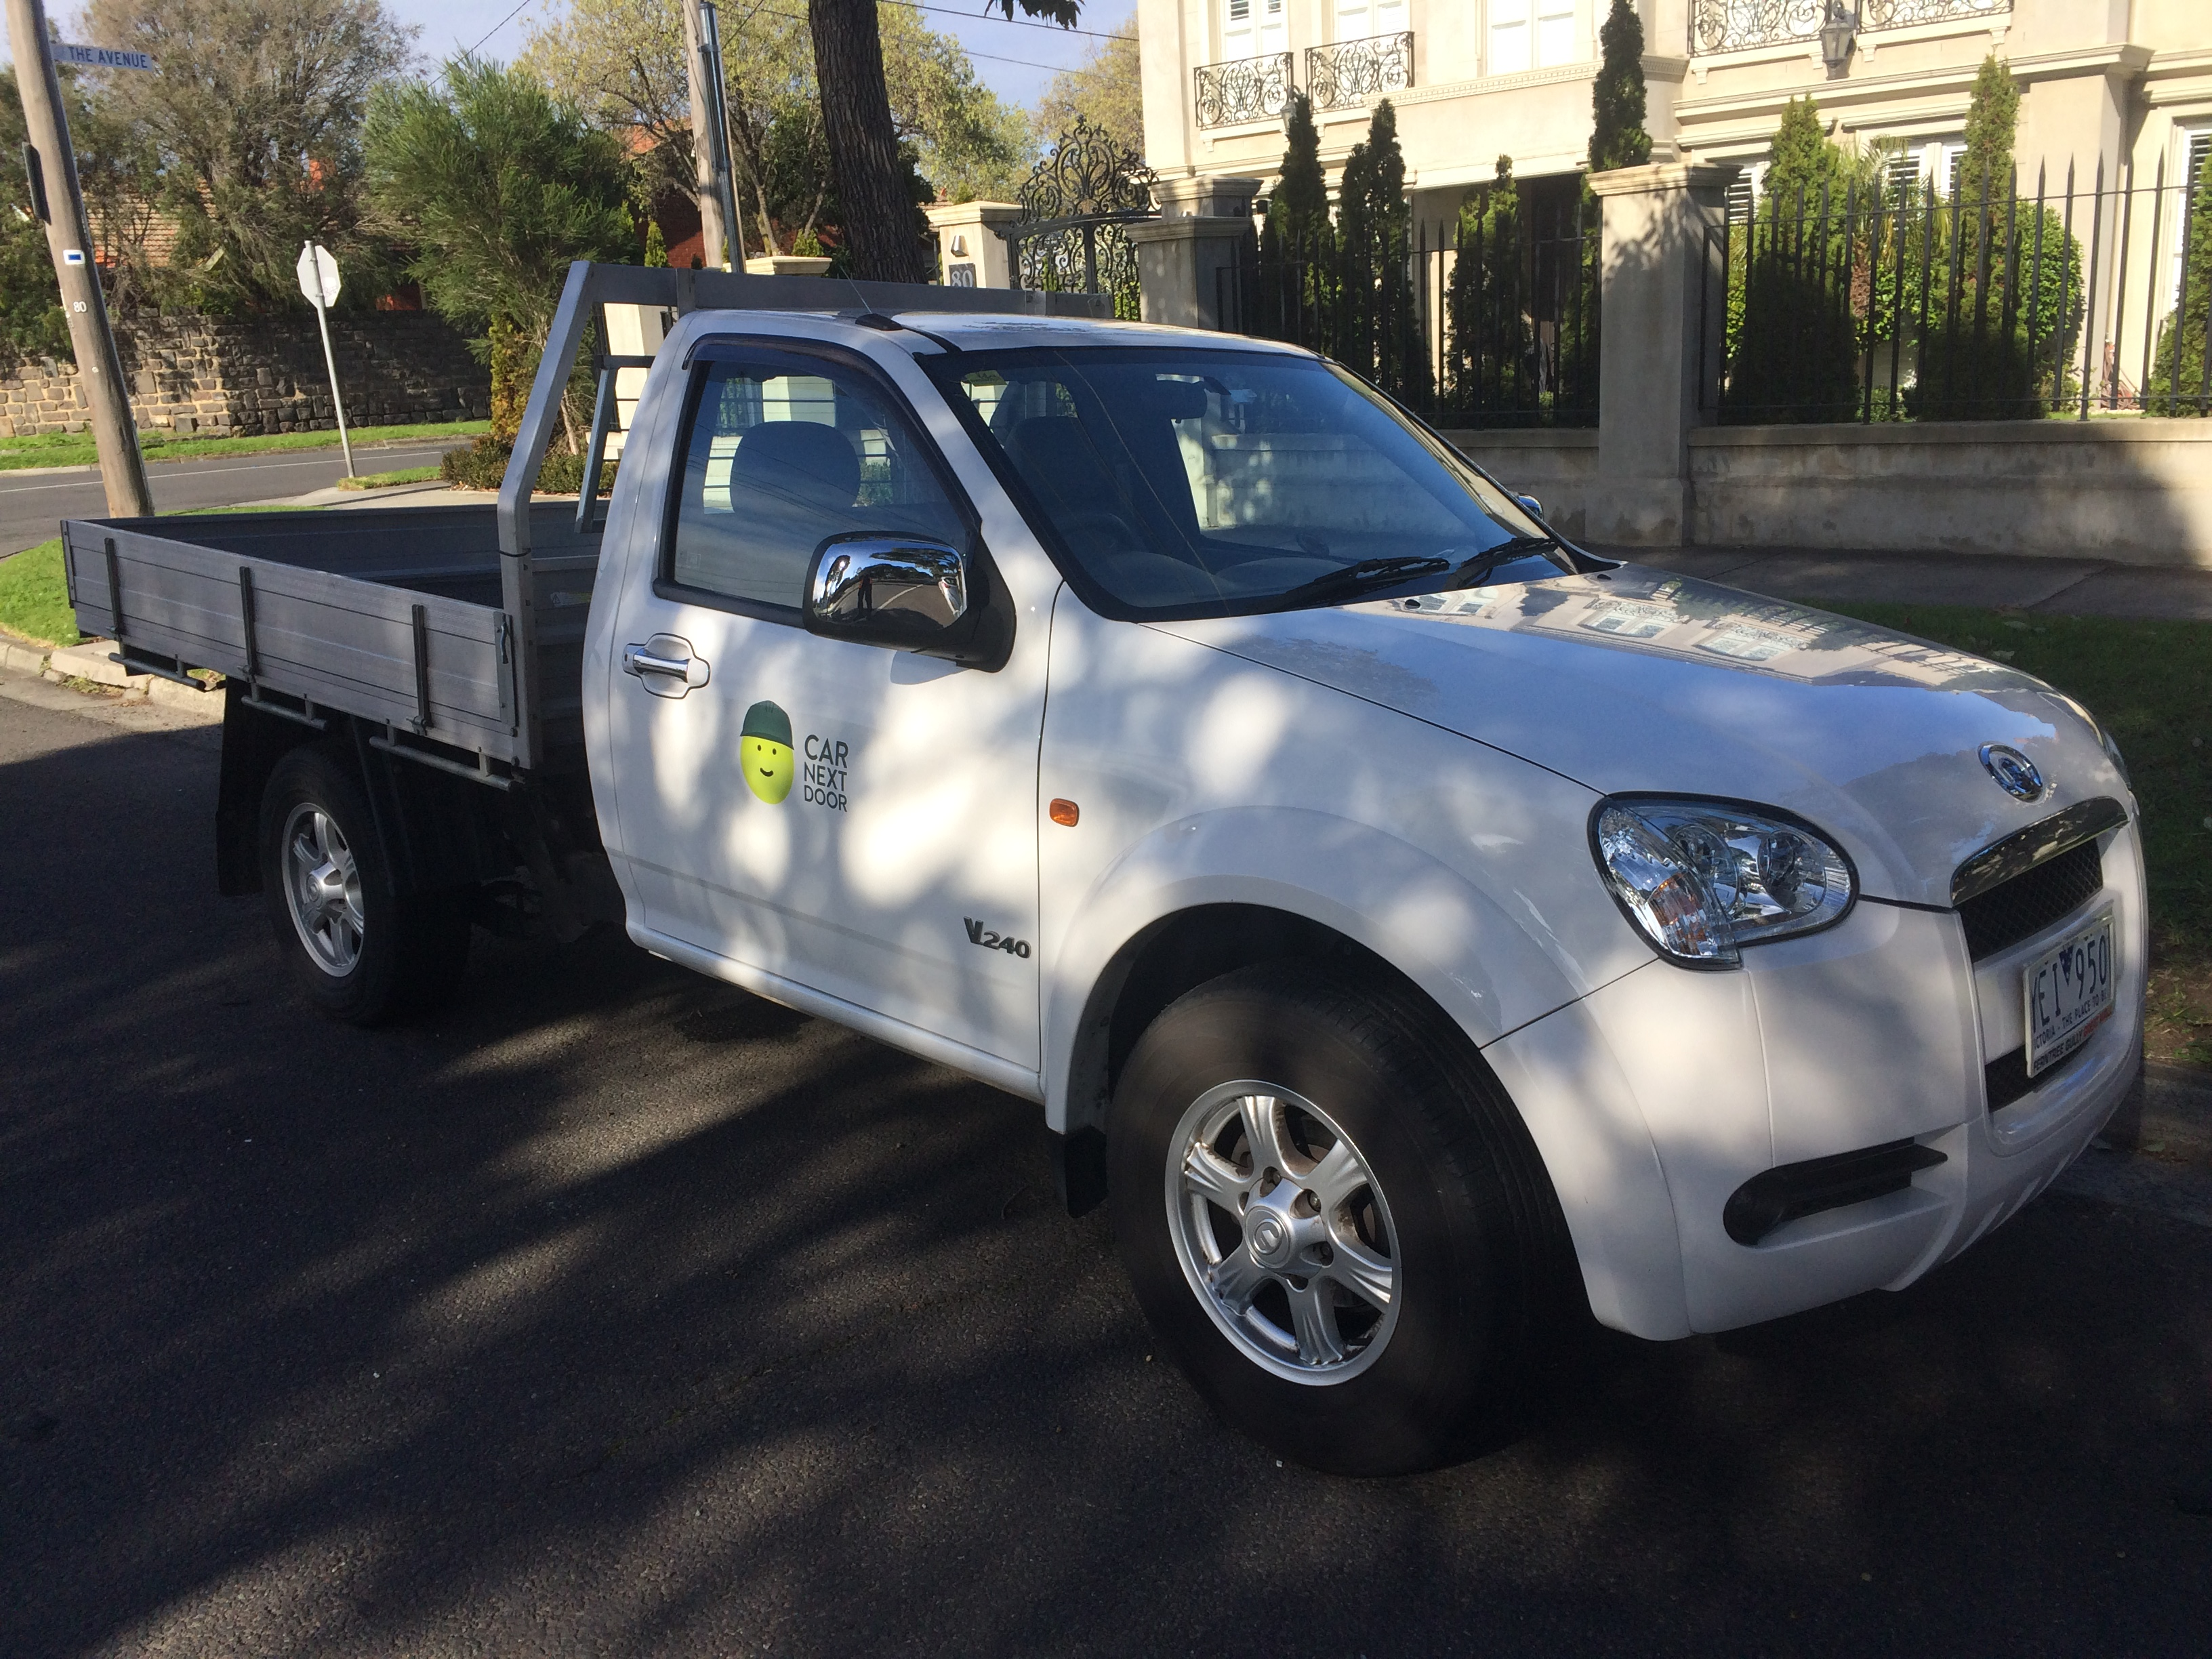 Picture of Urszula's 2011 Other - Economy Great Wall Single cab